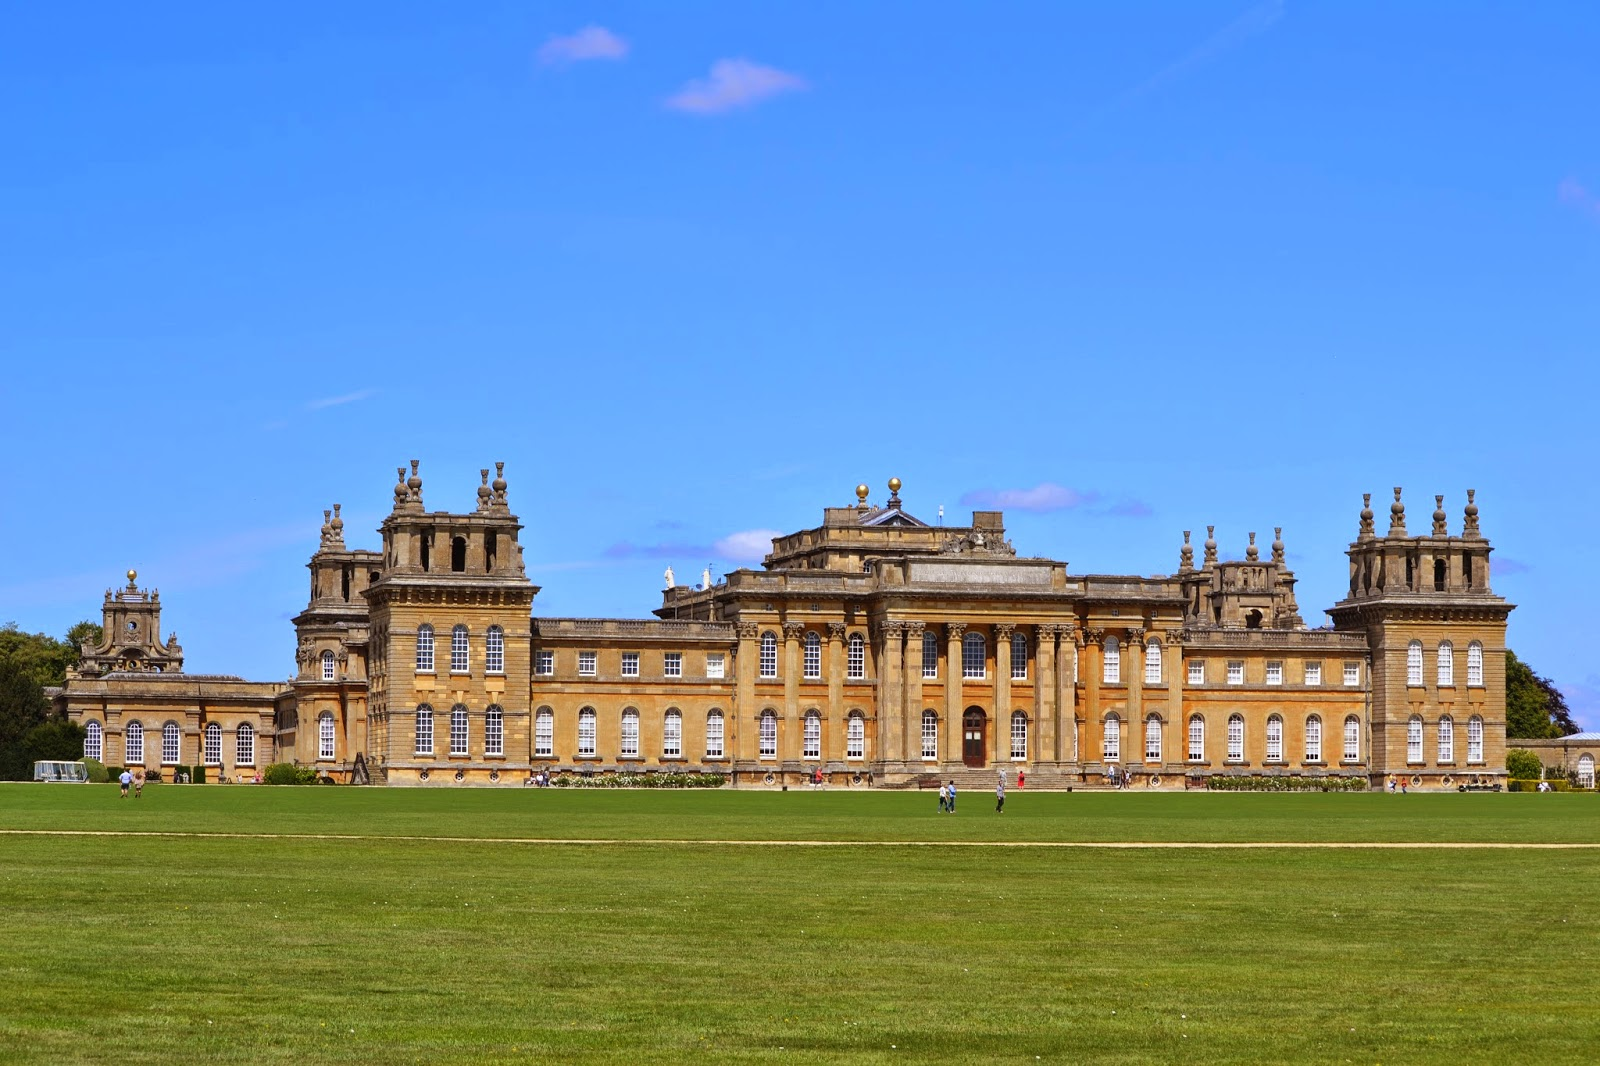 The magnificent Blenheim Palace